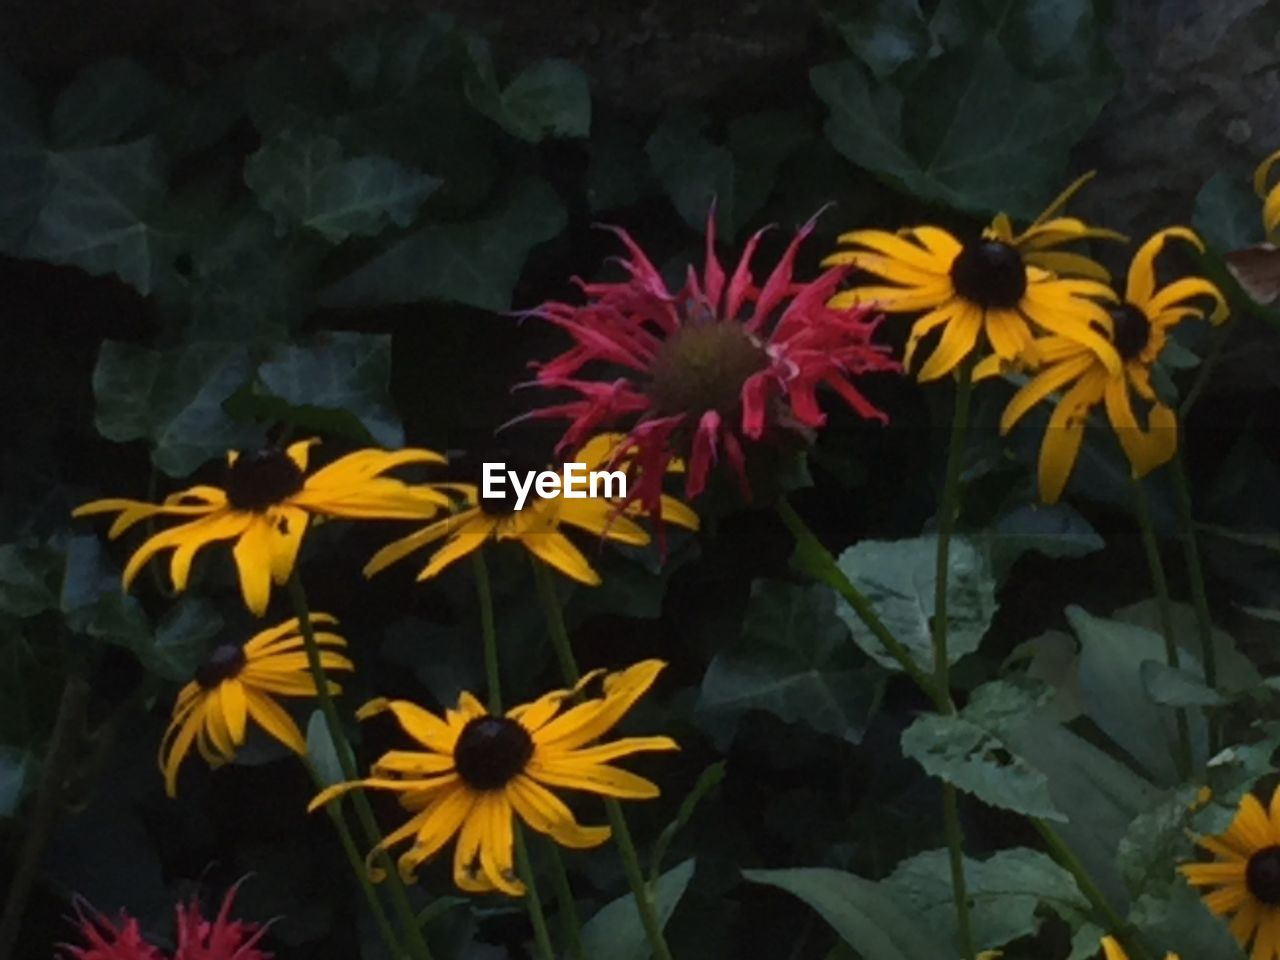 flower, petal, fragility, freshness, growth, yellow, flower head, beauty in nature, blooming, nature, plant, no people, pollen, black-eyed susan, outdoors, day, close-up, zinnia